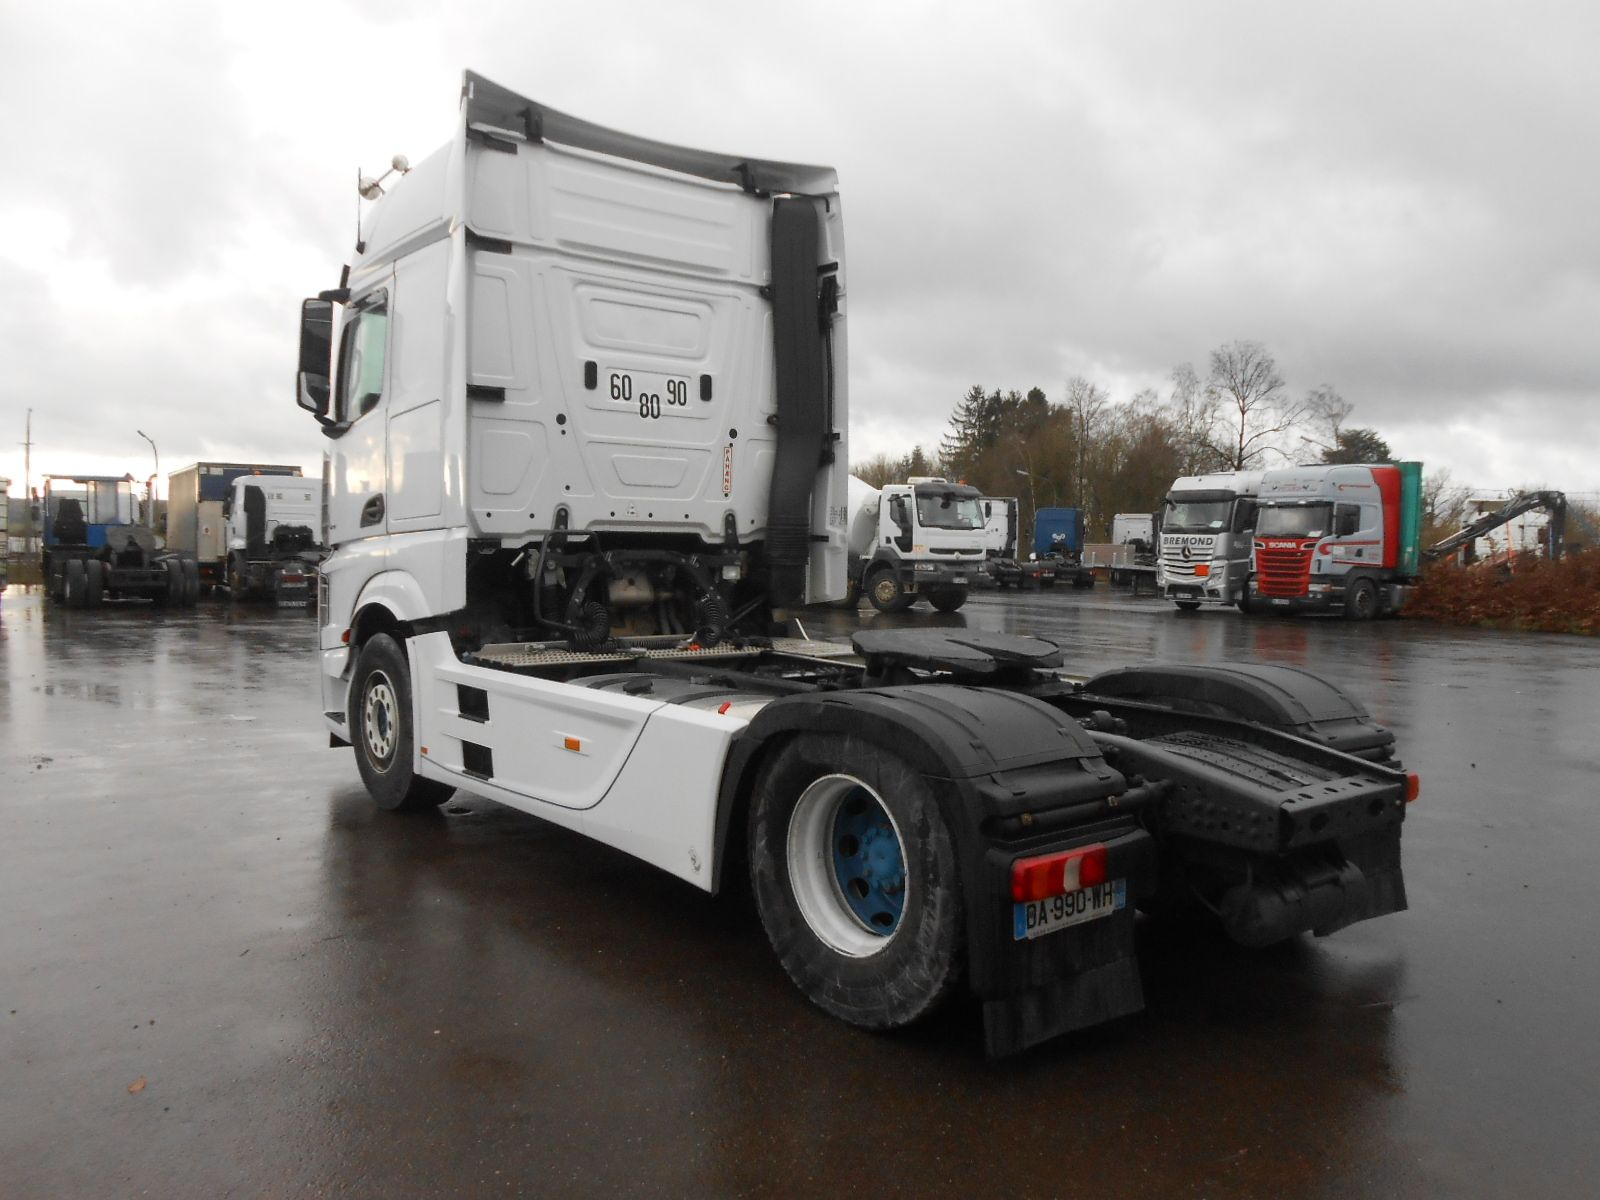 Vente occasion  Tracteur - MERCEDES Actros 1851  TRACTEUR (Belgique - Europe) - Houffalize Trading s.a.